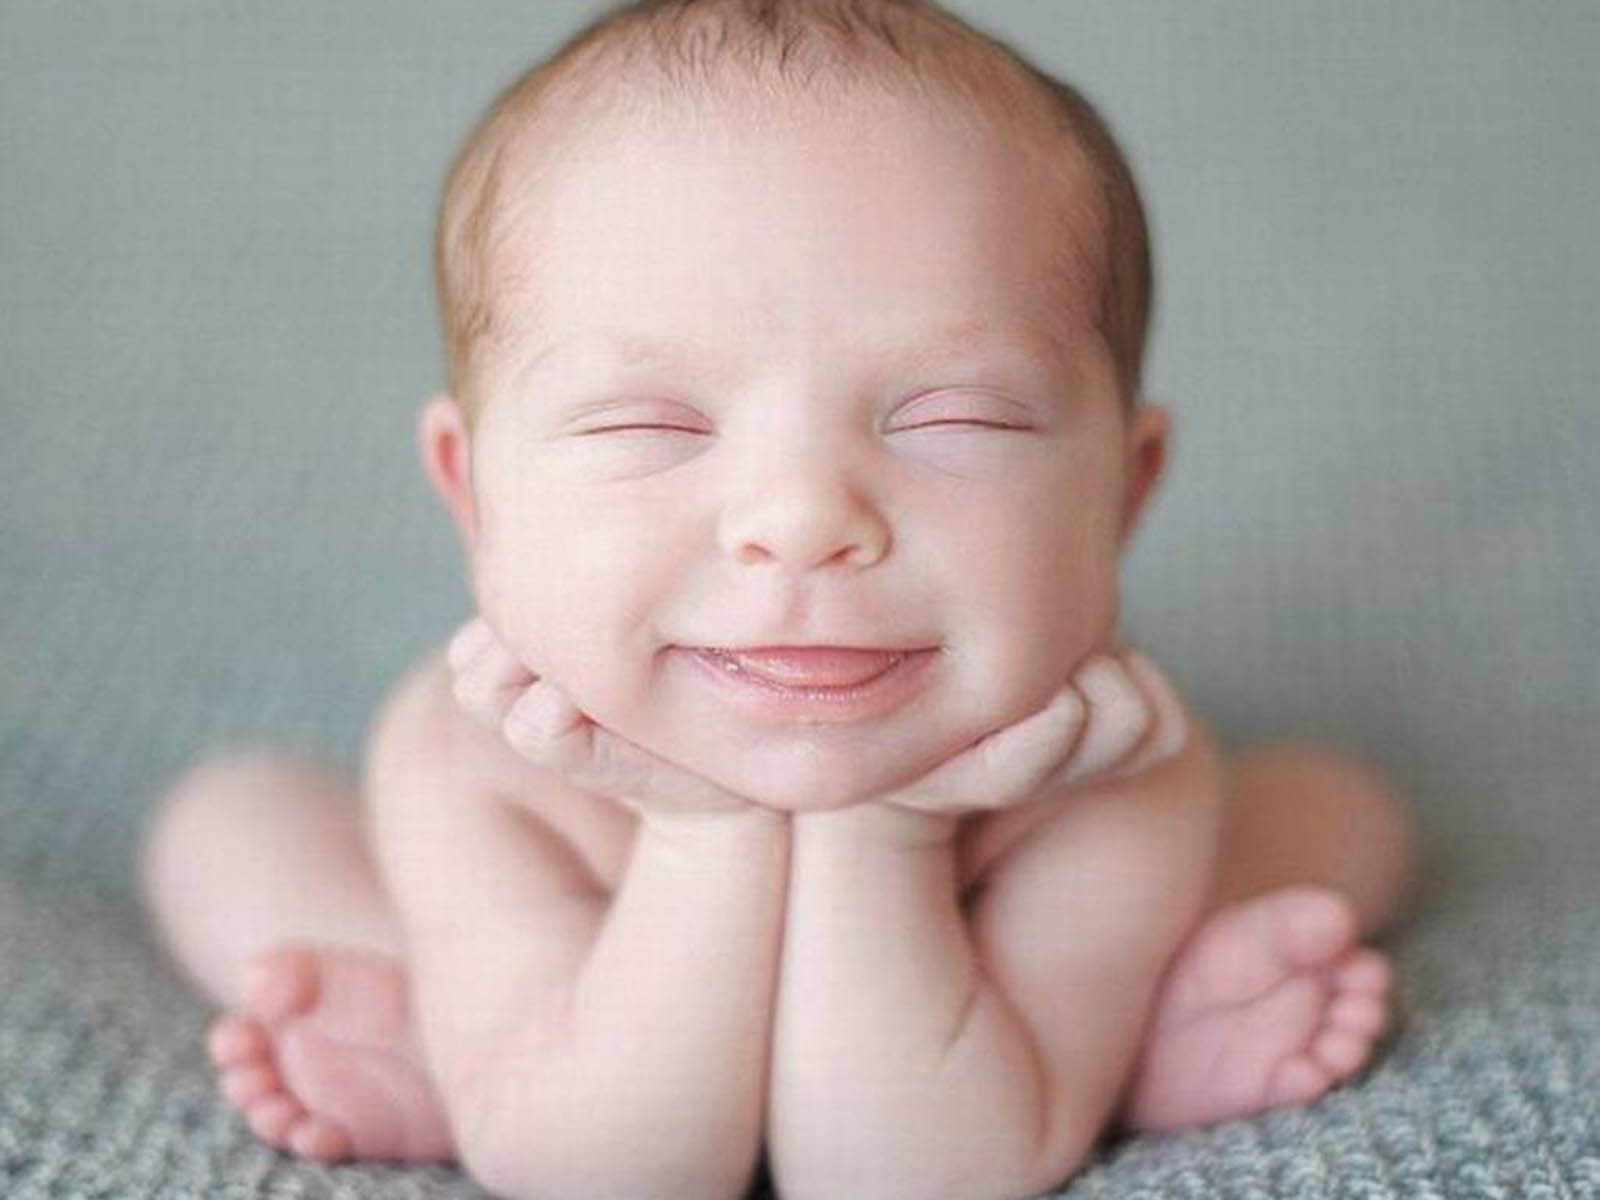 laughing baby wallpapers - sf wallpaper